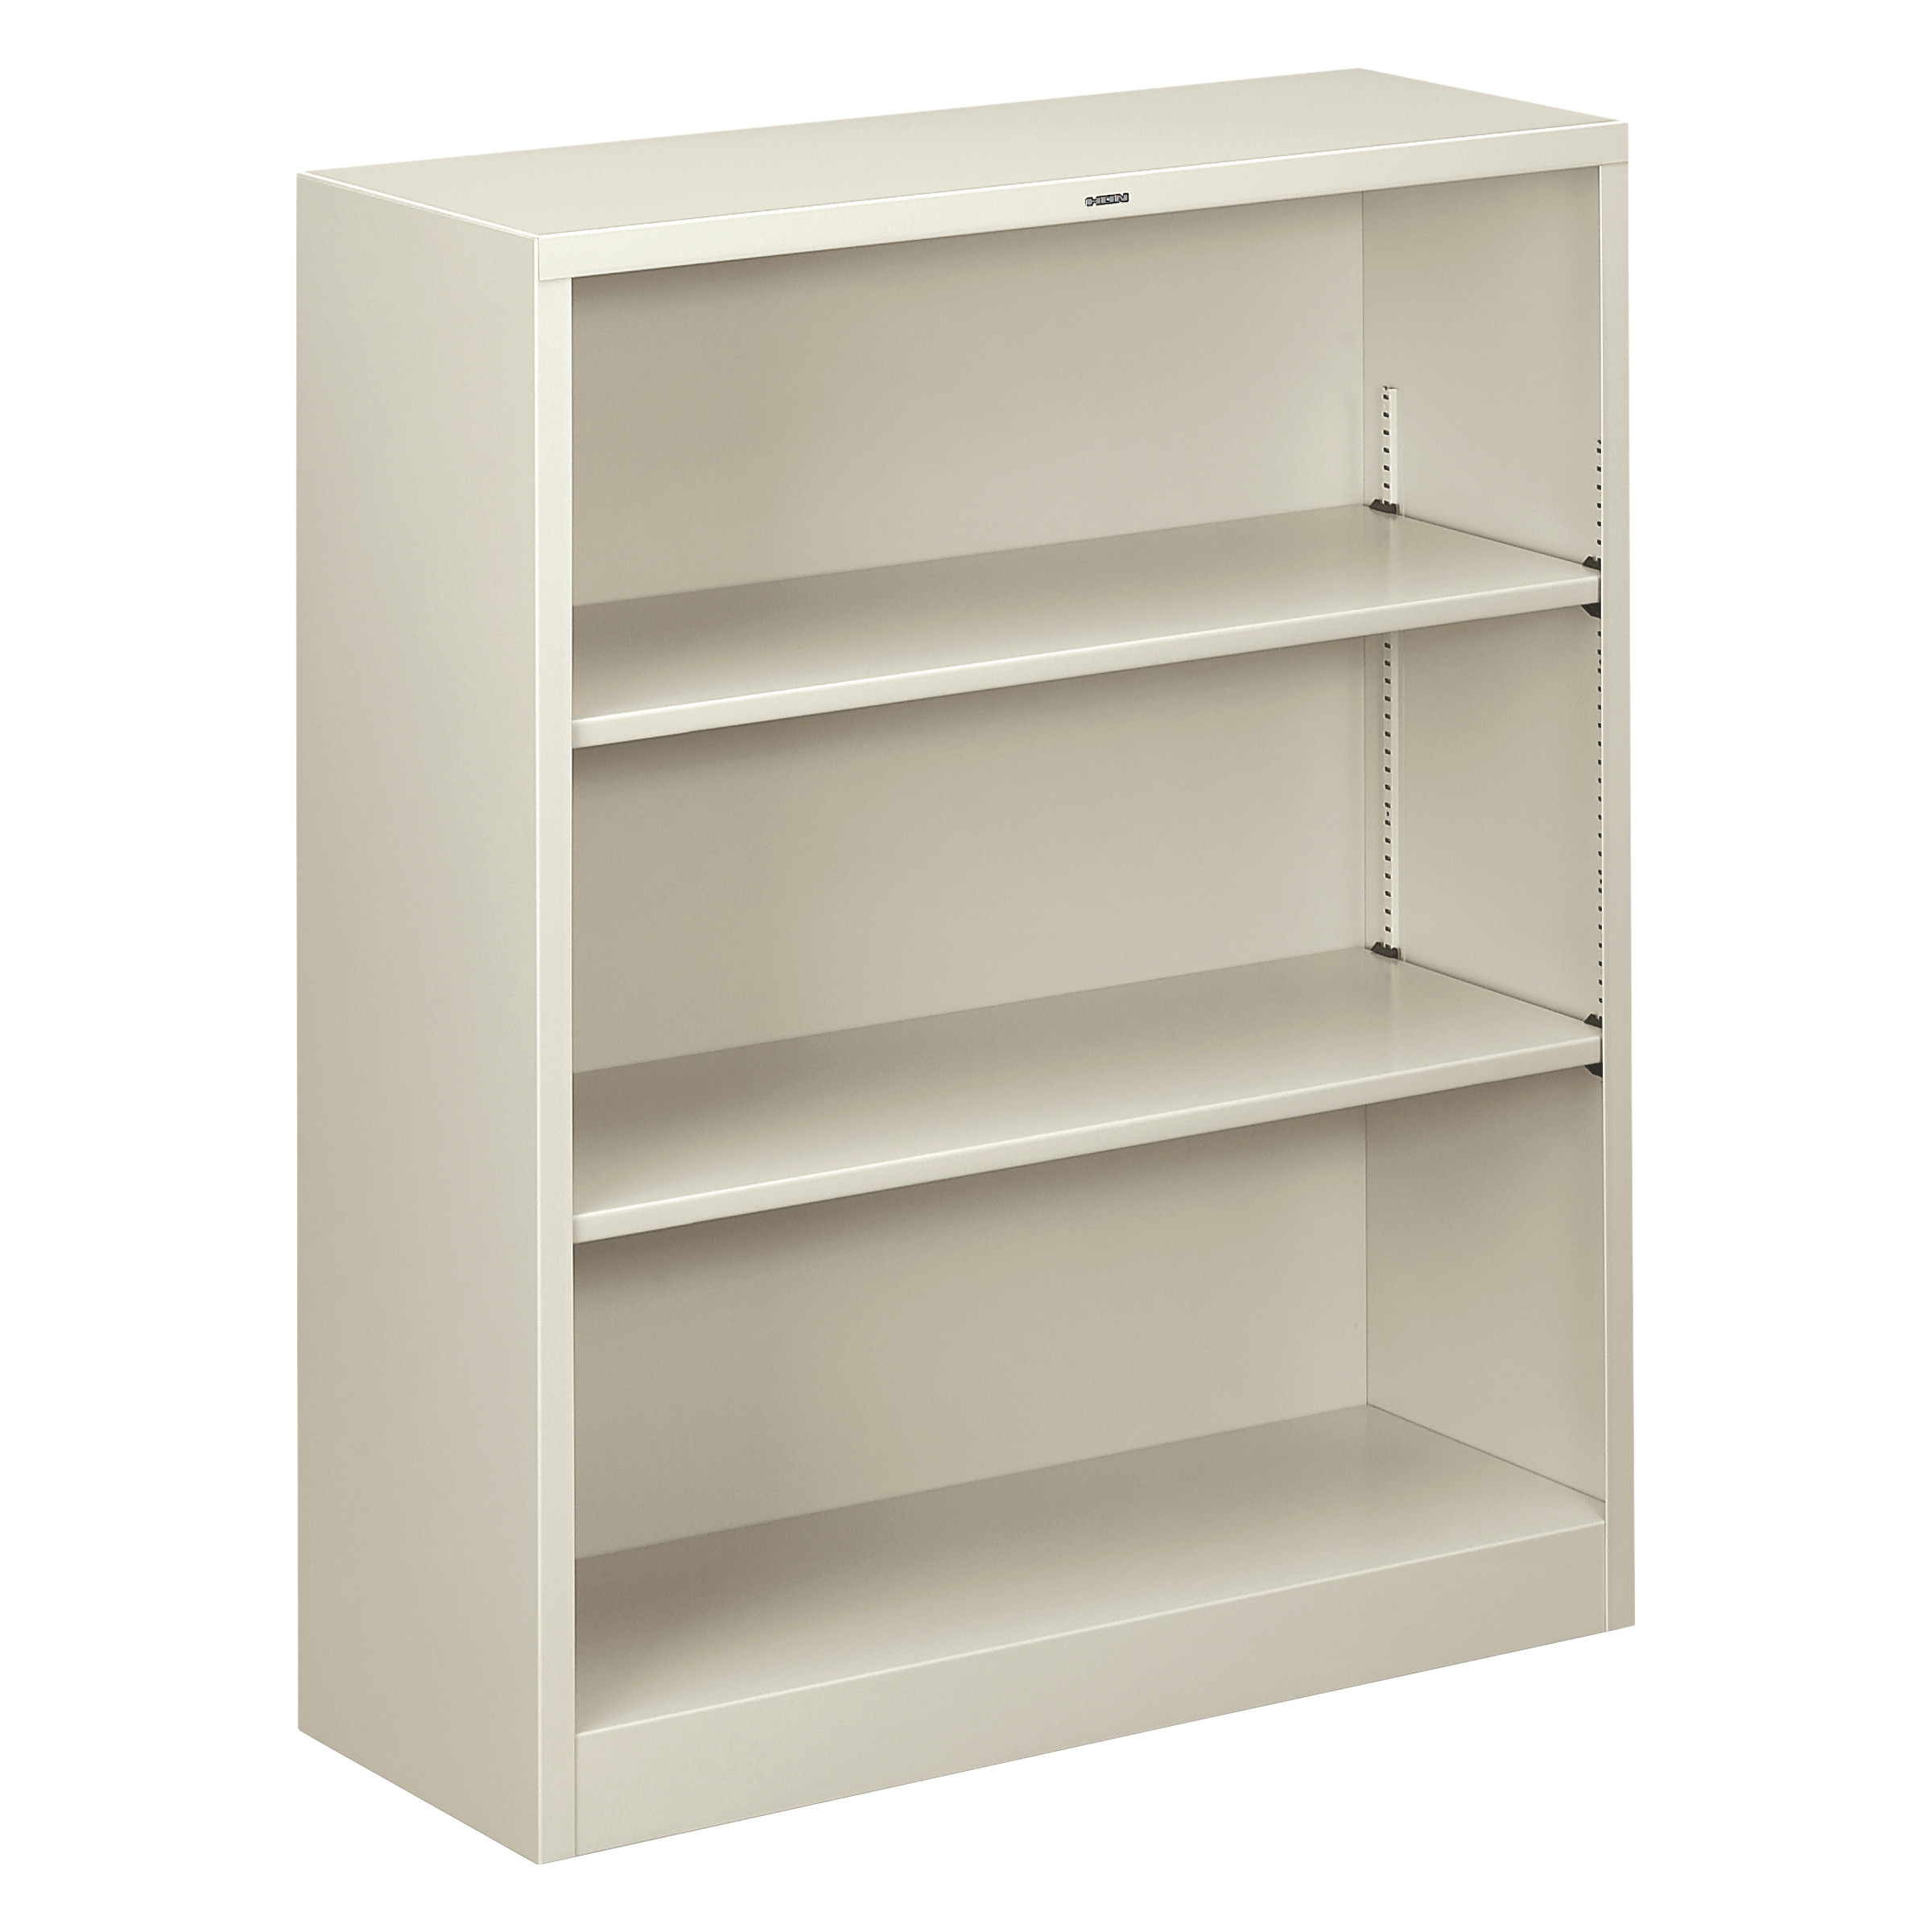 dp hon view bookcases metal amazon bookcase with two com shelves larger